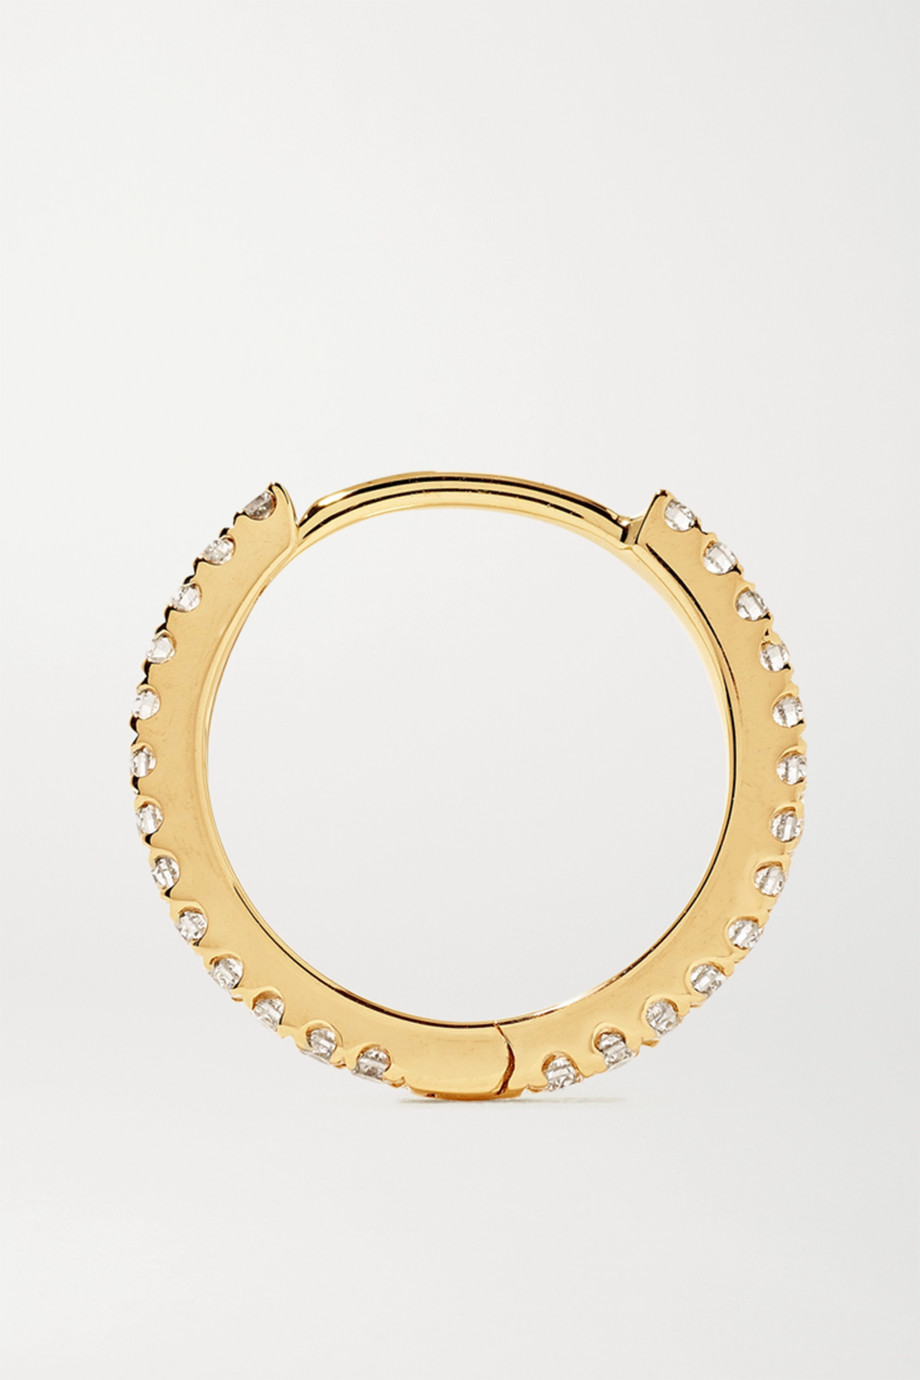 Maria Tash Eternity 9.5mm 18-karat gold diamond hoop earring